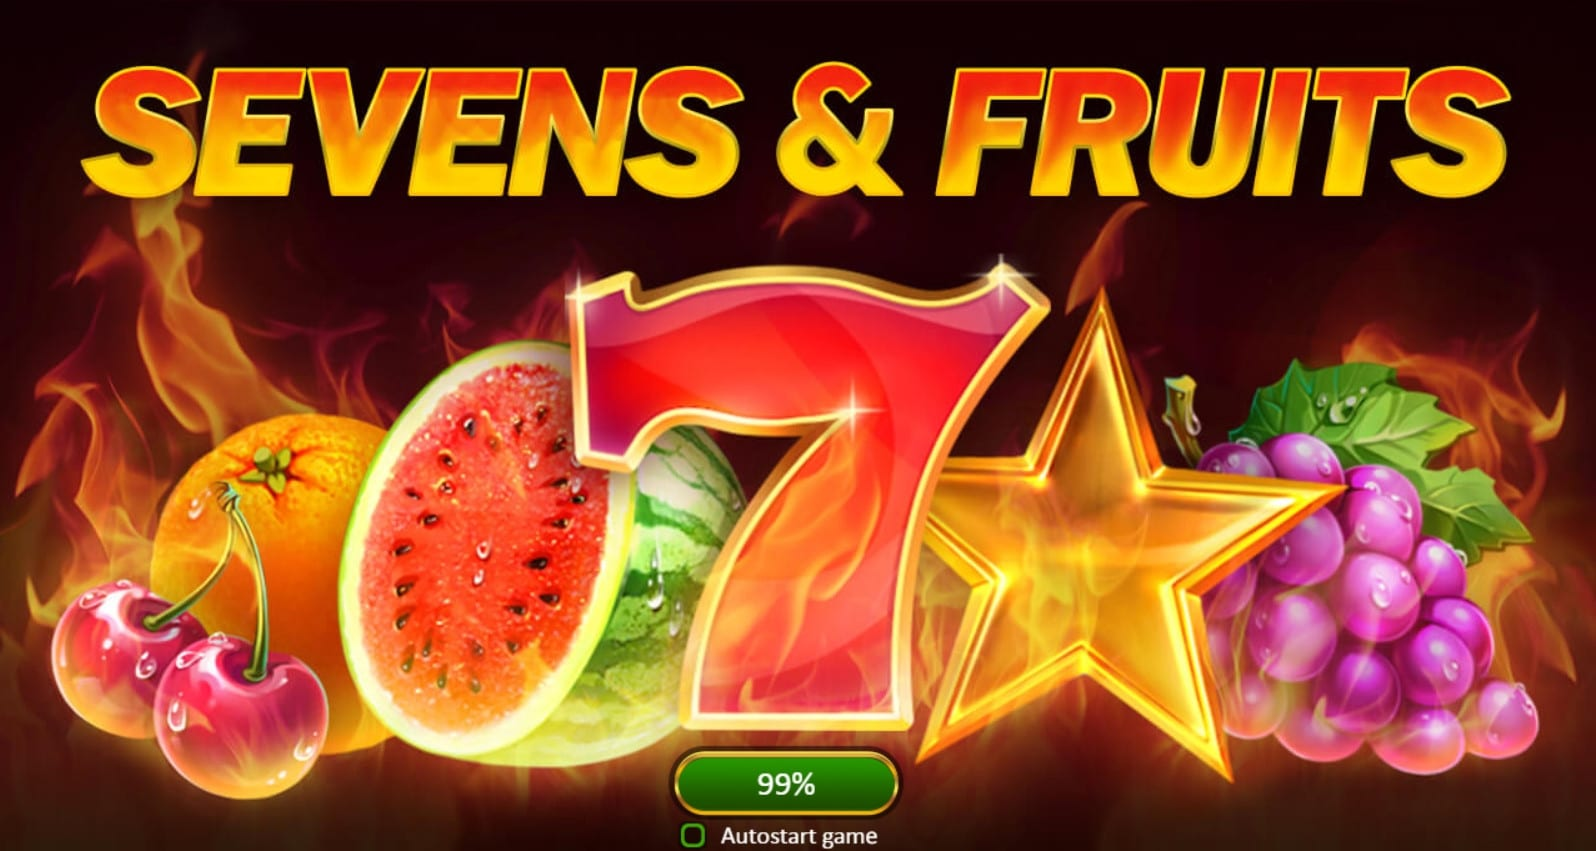 sevens & fruits slots game logo